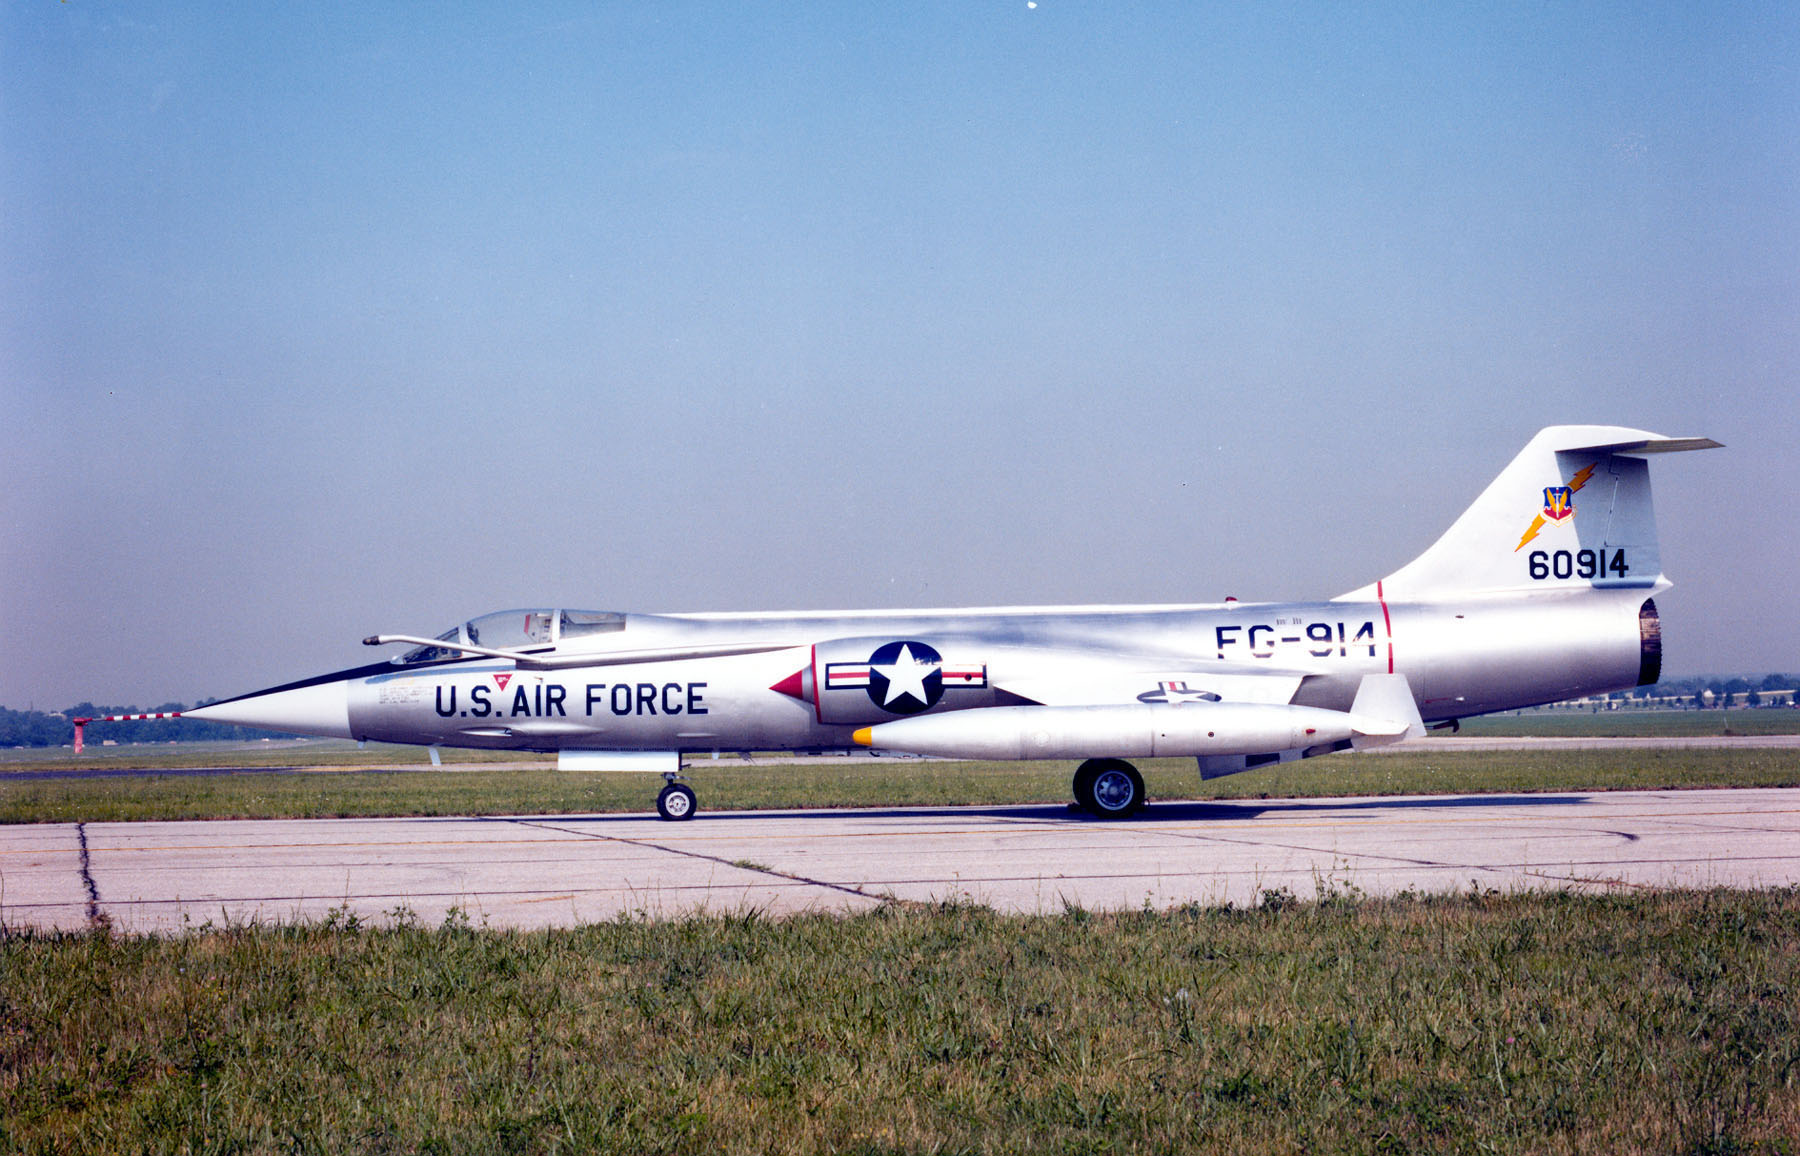 DAYTON, Ohio -- Lockheed F-104C Starfighter at the National Museum of the United States Air Force. (U.S. Air Force photo)